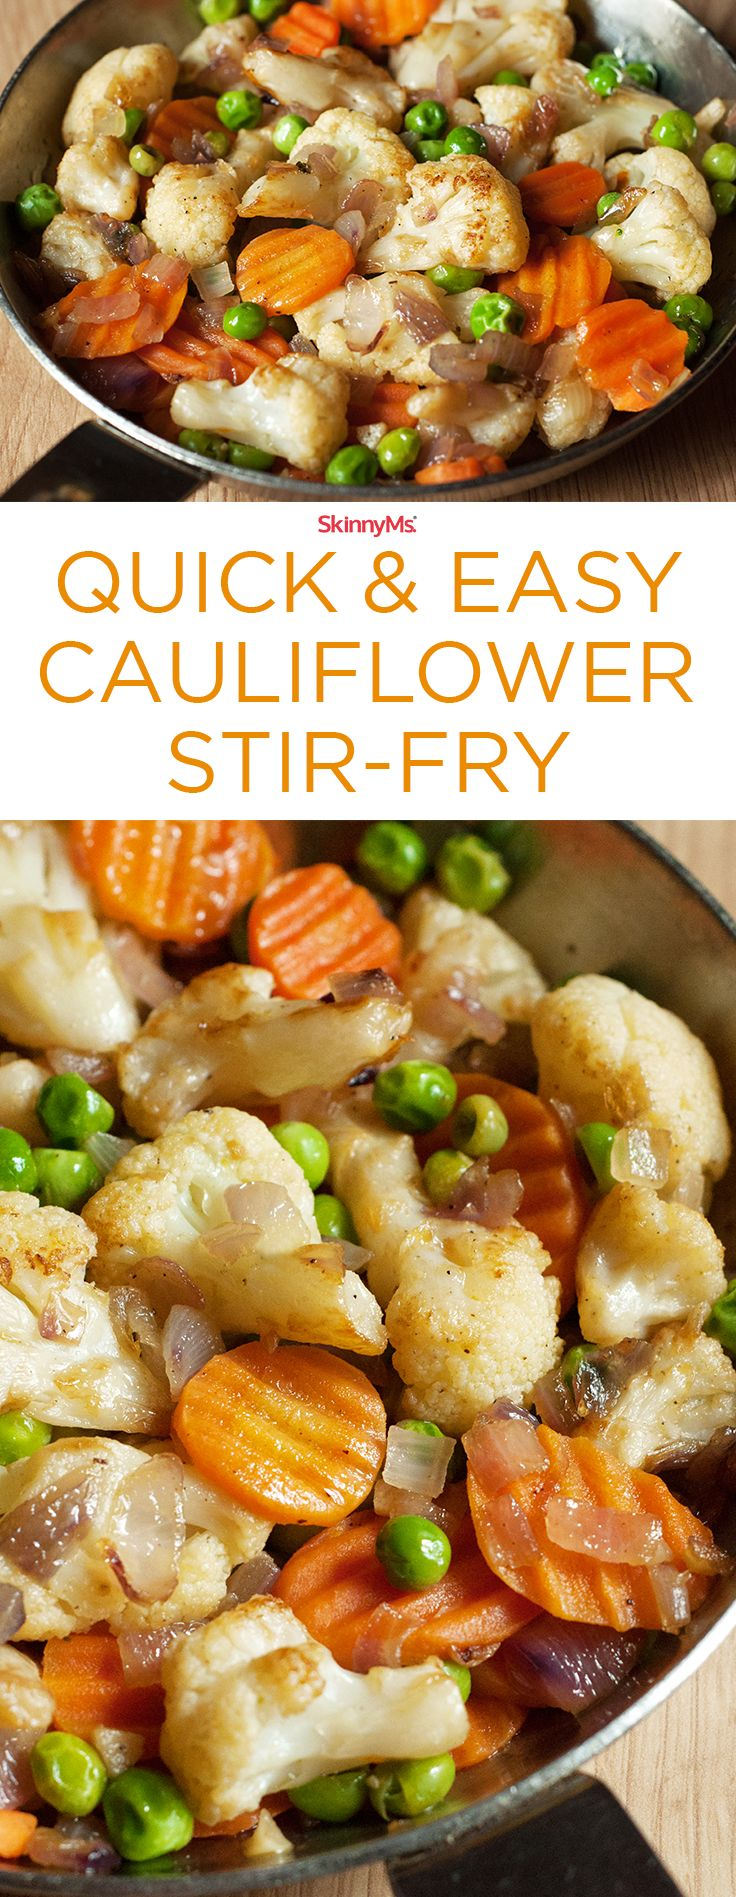 Our Quick & Easy Cauliflower Stir-Fry takes clean-eating to a whole new level. :) Only 11g of carbs and 4 SmartPoints #lowcal #lowcarb #skinnyms